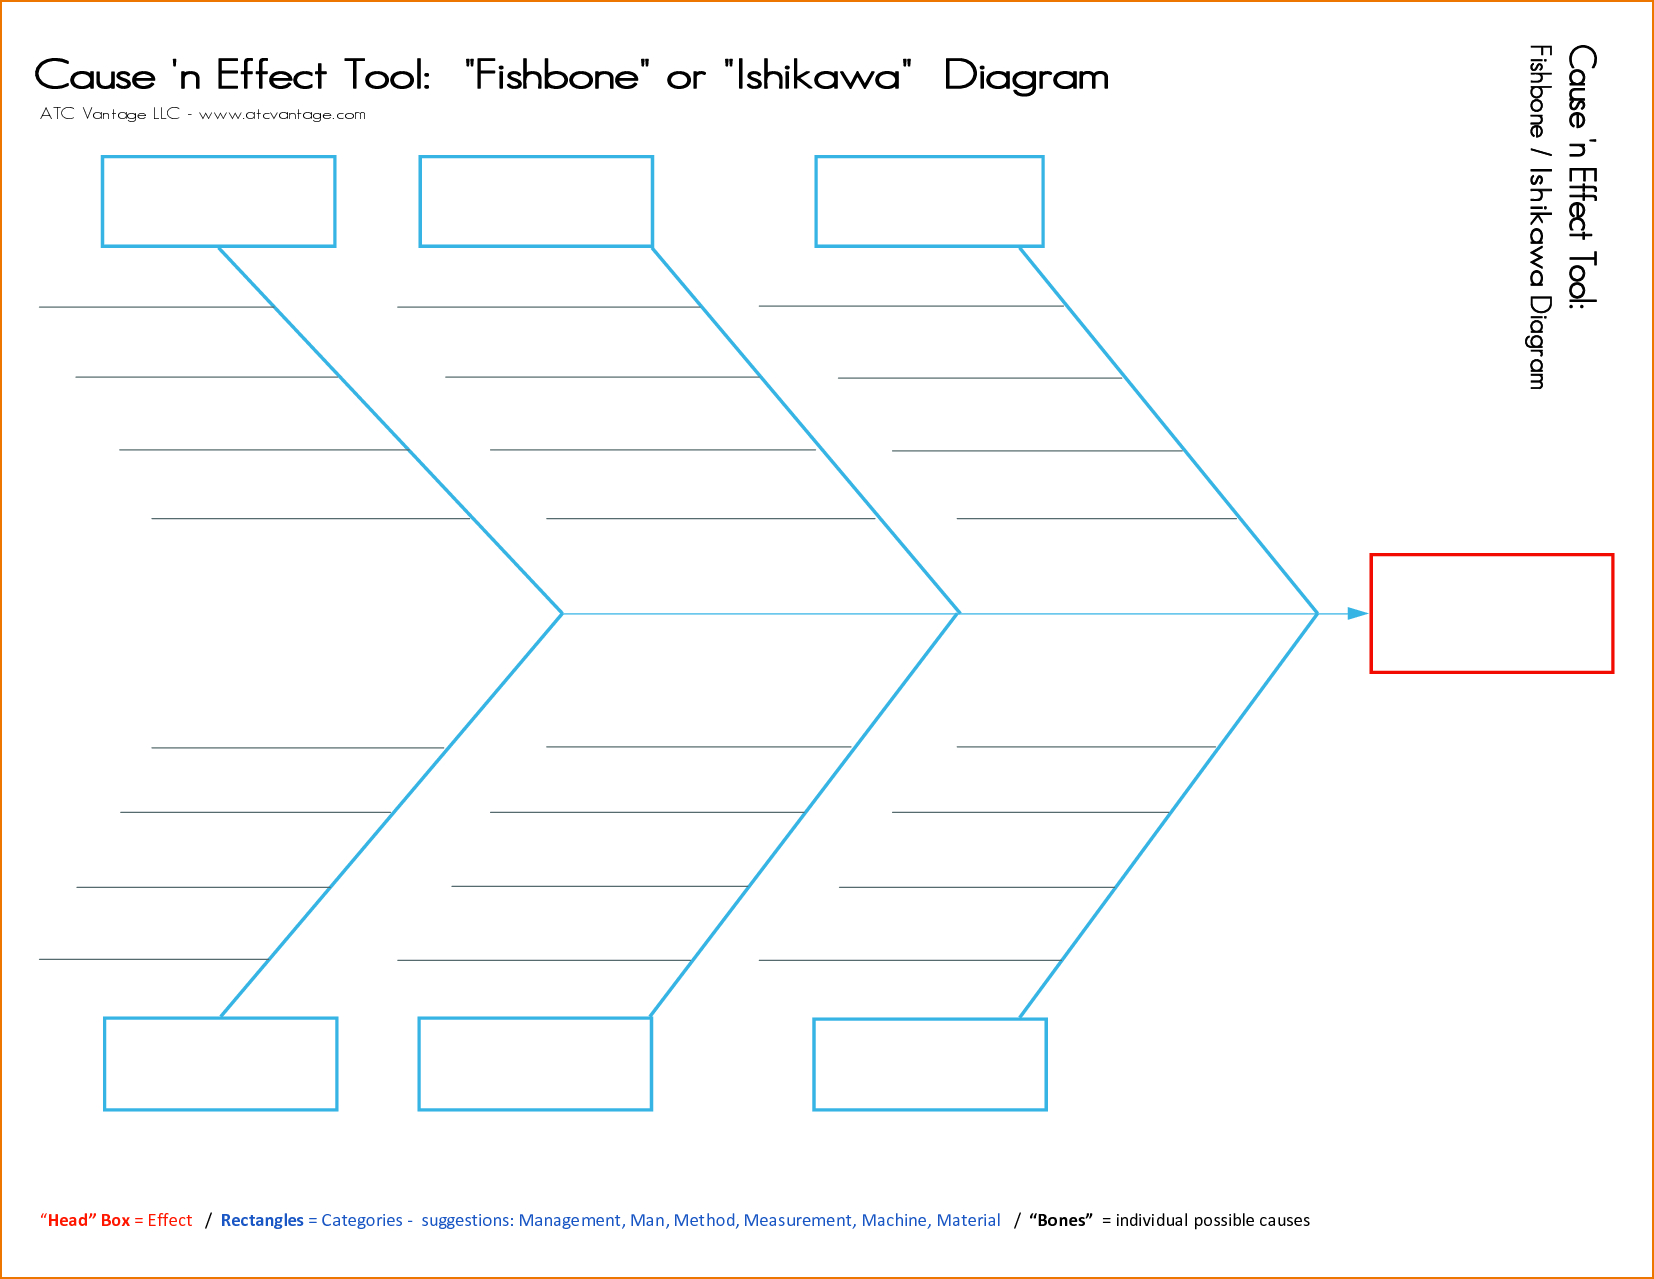 Ishikawa Diagram Template 4 Cause And Effect Diagram Template Teknoswitch